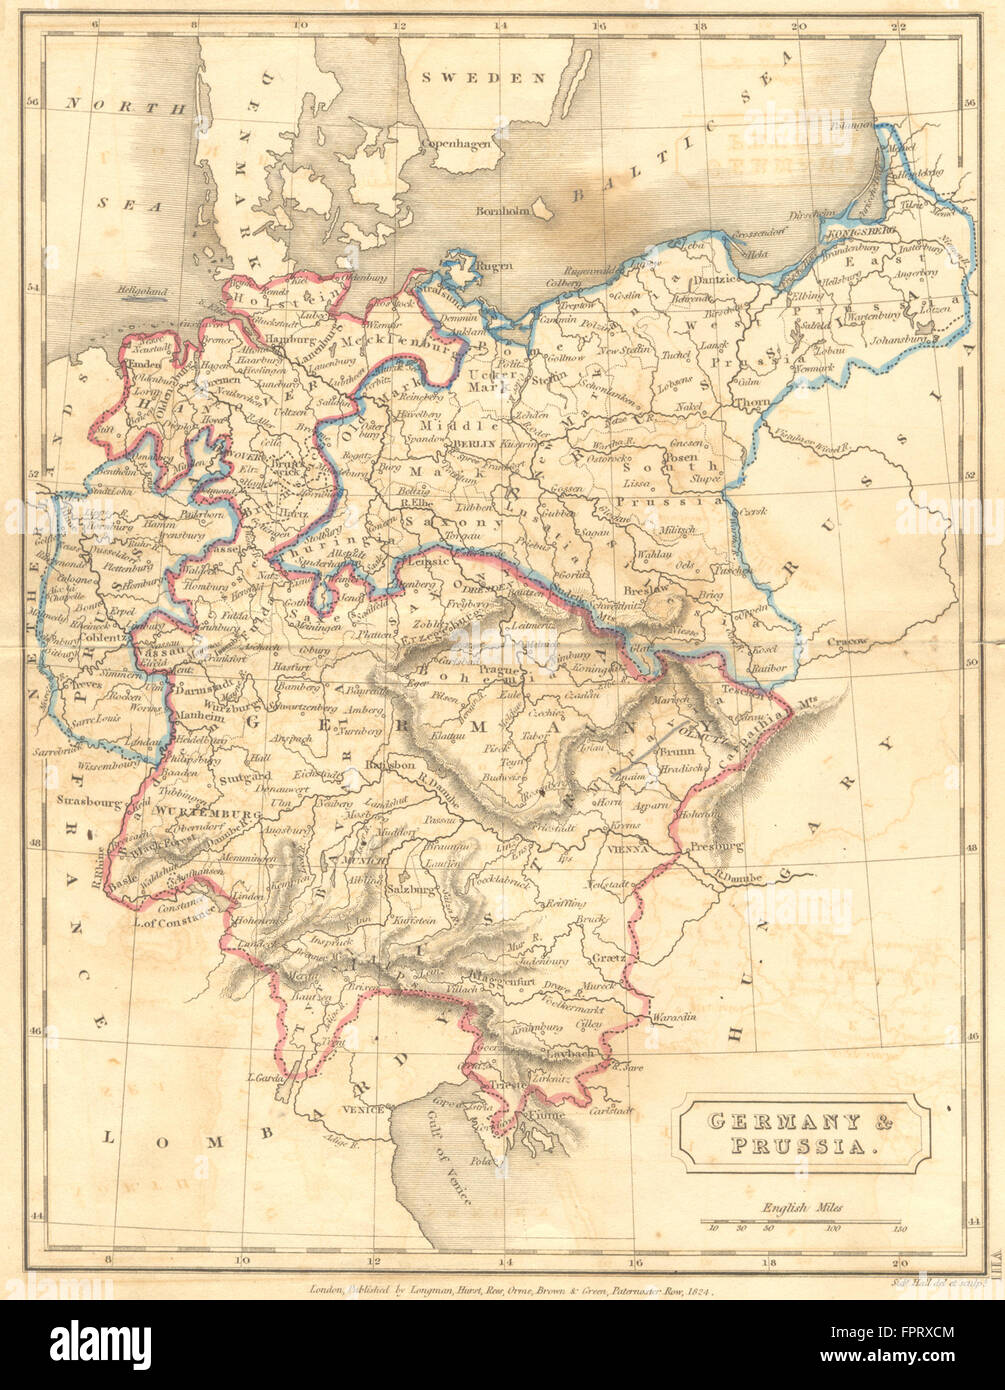 Germany Prussia Hall 1850 Antique Map Stock Photo 100099908